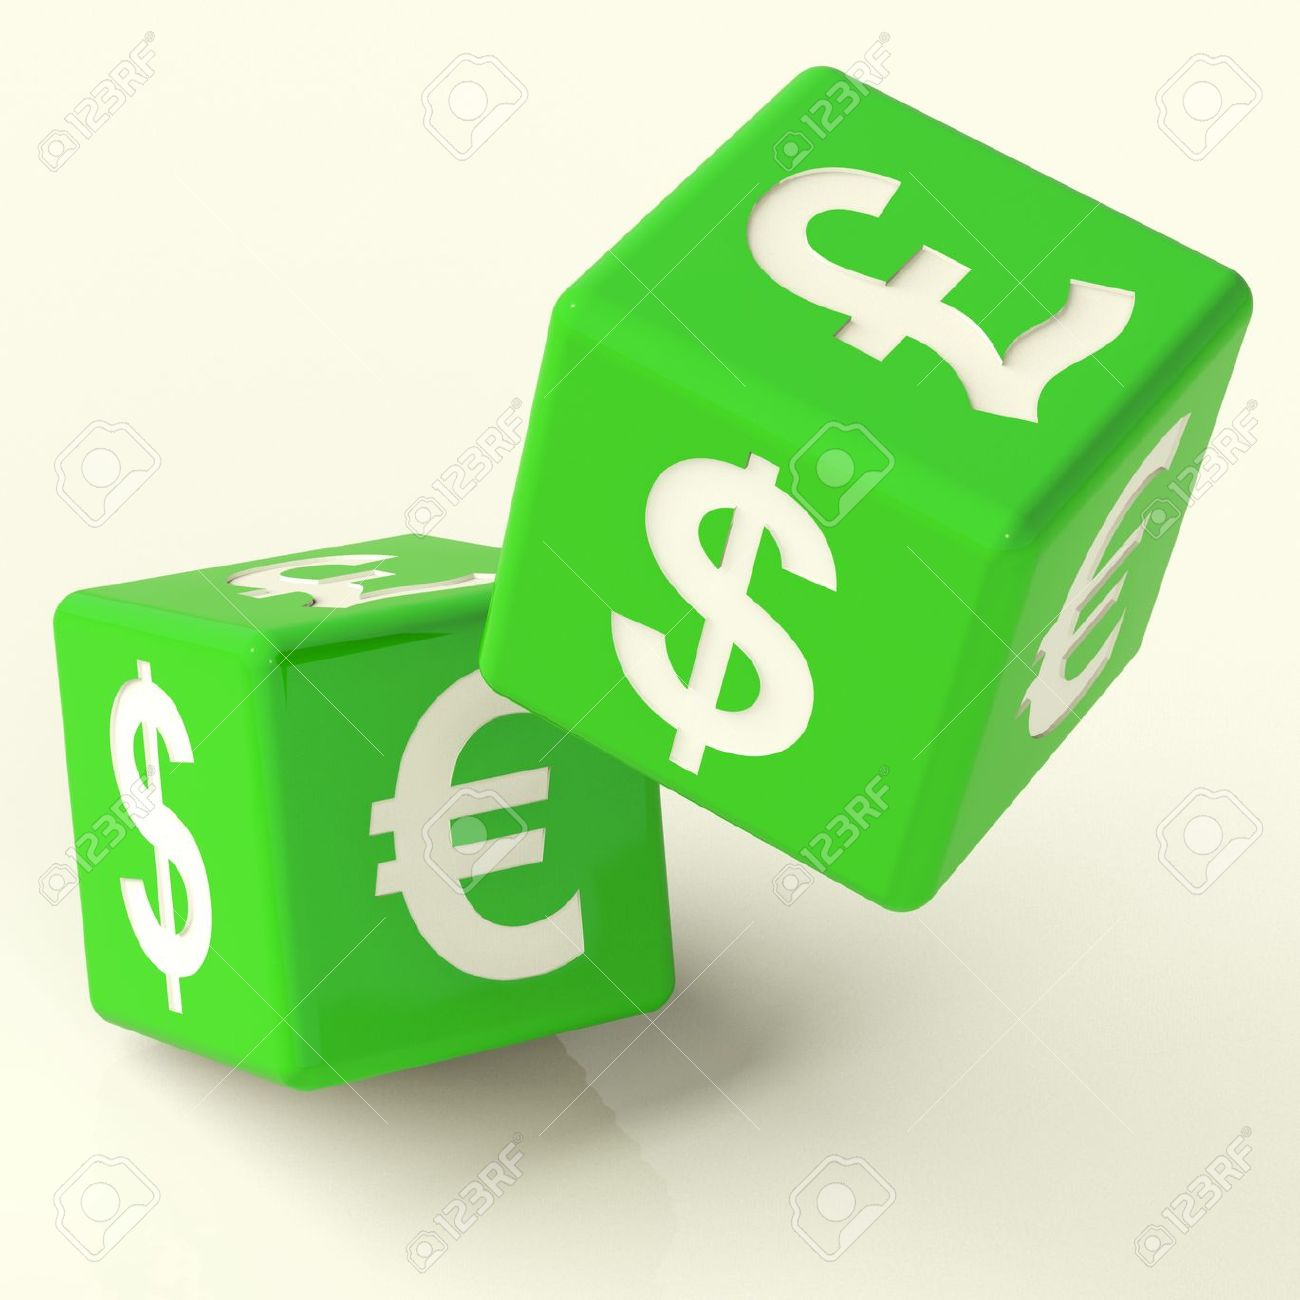 Currency signs on green dice as a symbol of foreign exchange stock currency signs on green dice as a symbol of foreign exchange stock photo 11725556 biocorpaavc Images